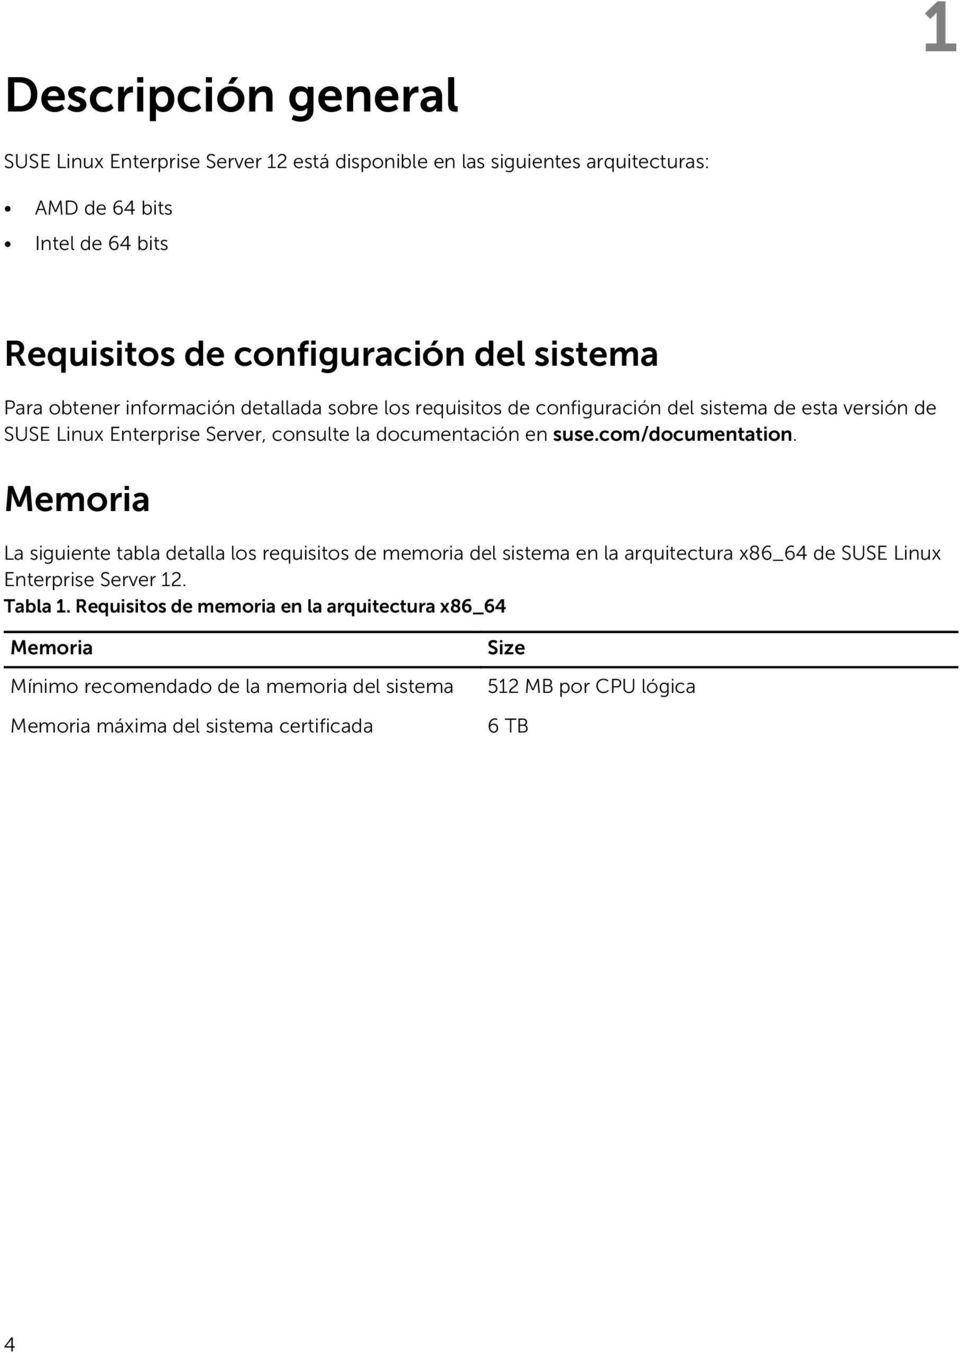 en suse.com/documentation. Memoria La siguiente tabla detalla los requisitos de memoria del sistema en la arquitectura x86_64 de SUSE Linux Enterprise Server 12. Tabla 1.